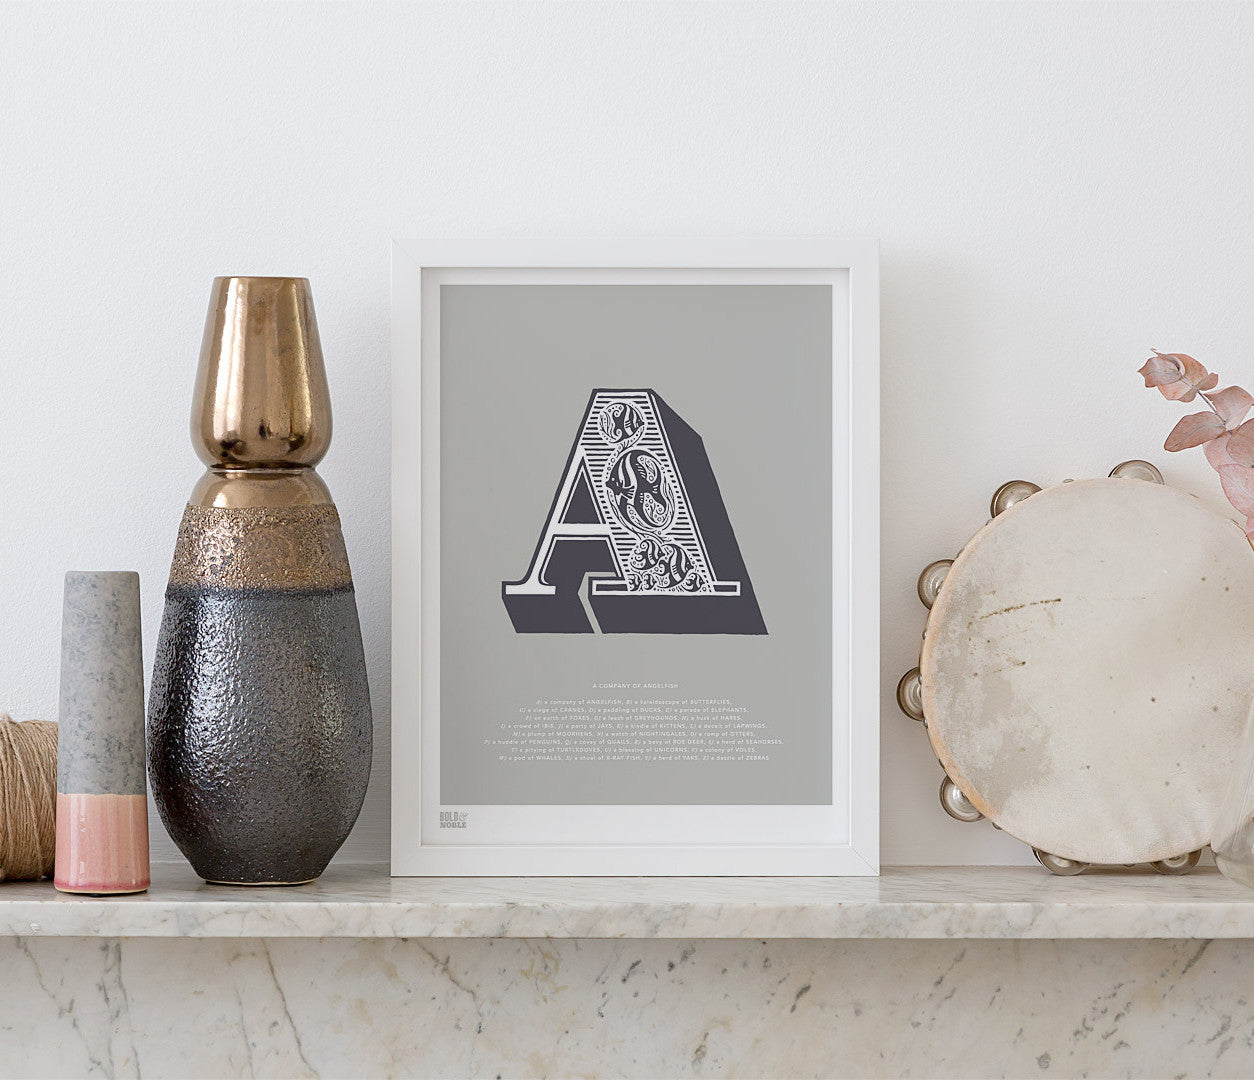 Wall Art Ideas: Economical Screen Prints, Illustrated Letter A printed in putty grey